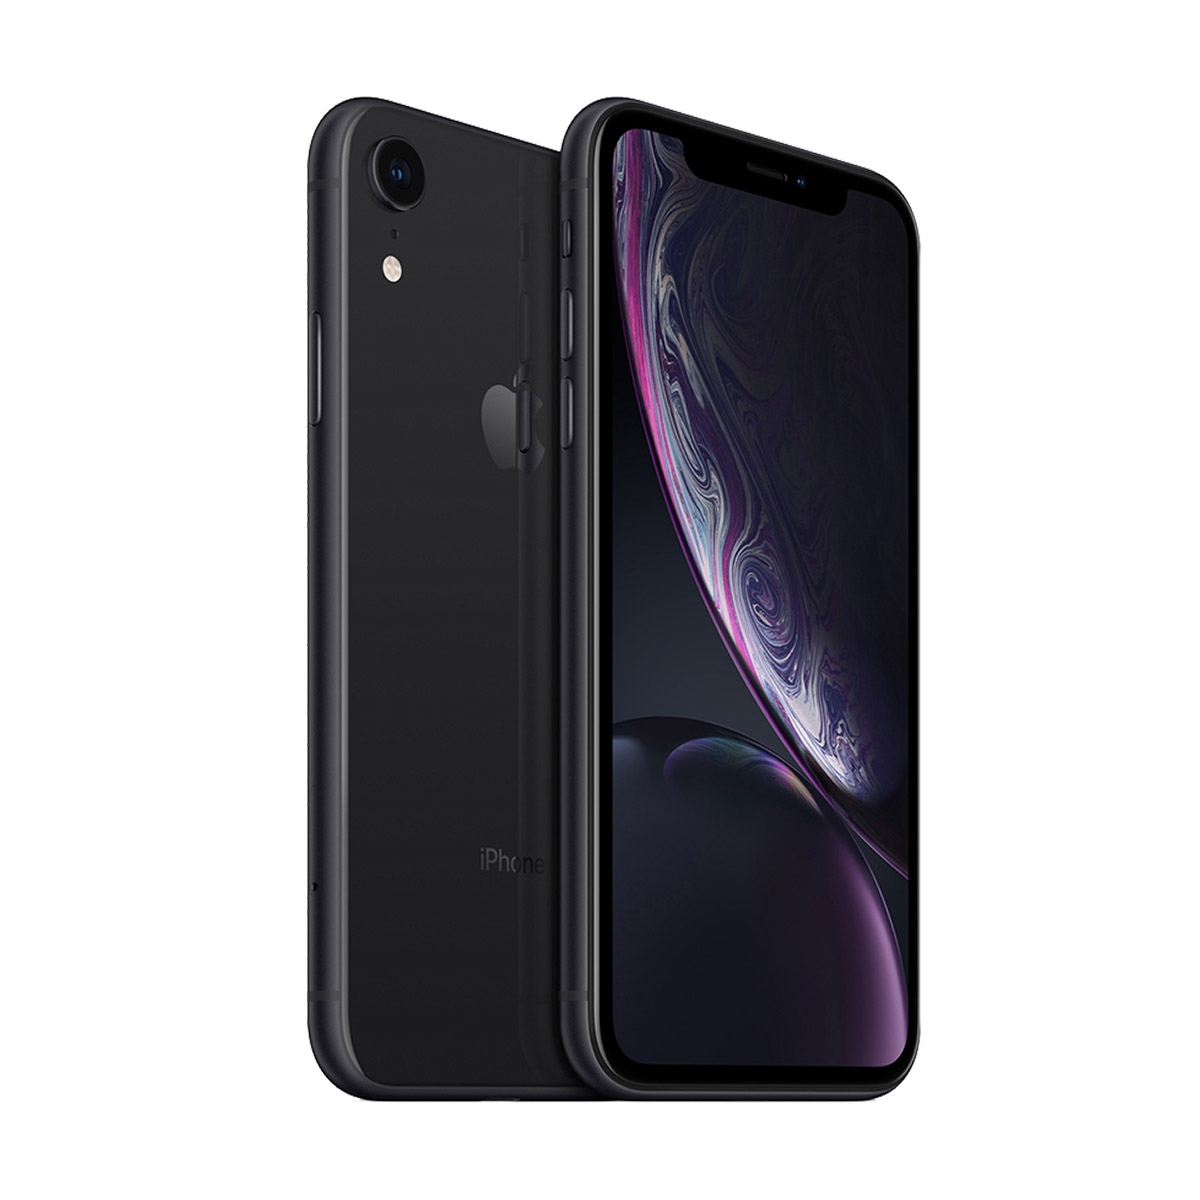 【傑昇通信】APPLE iPhone XR (128G)。空機破盤價